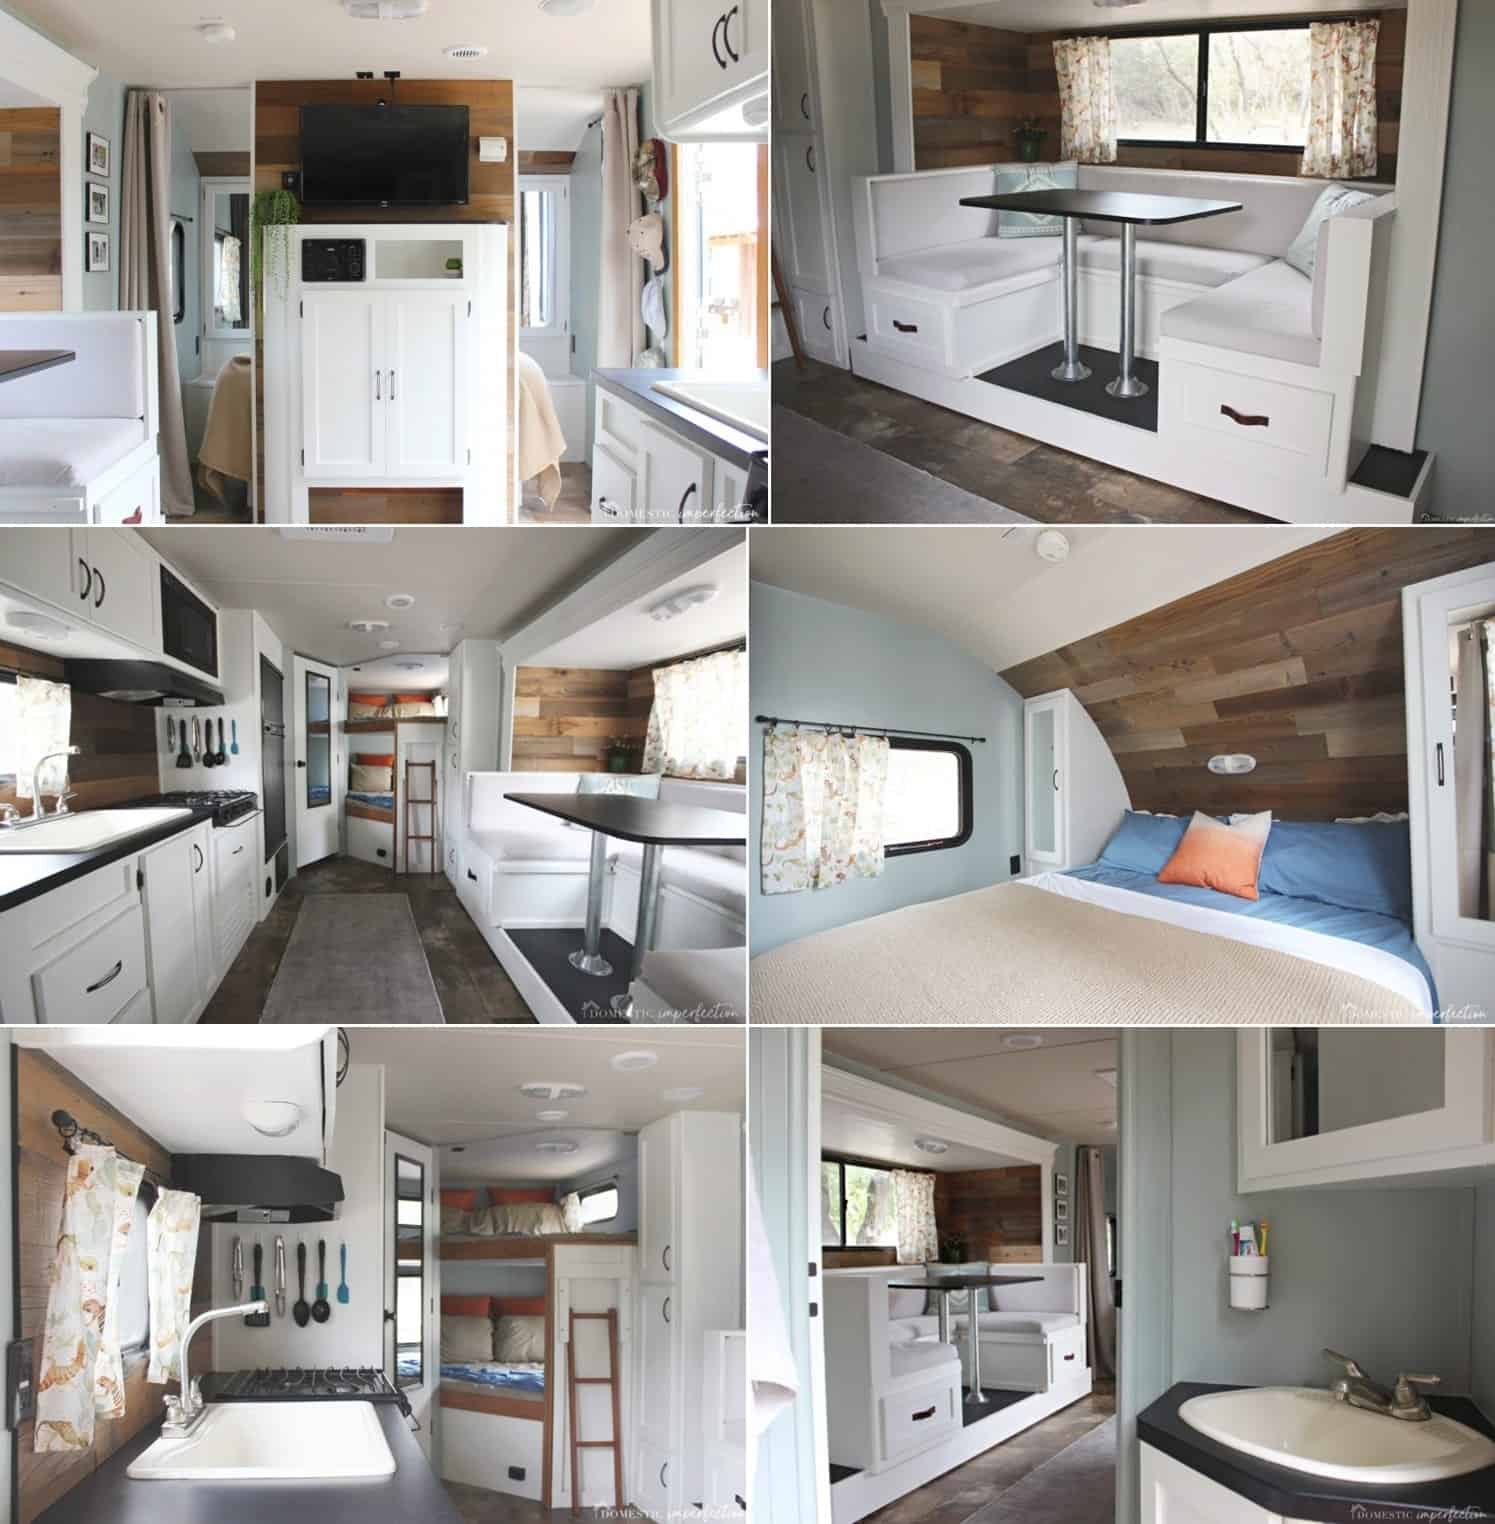 An RV Remodel That Looks Like a Studio Apartment